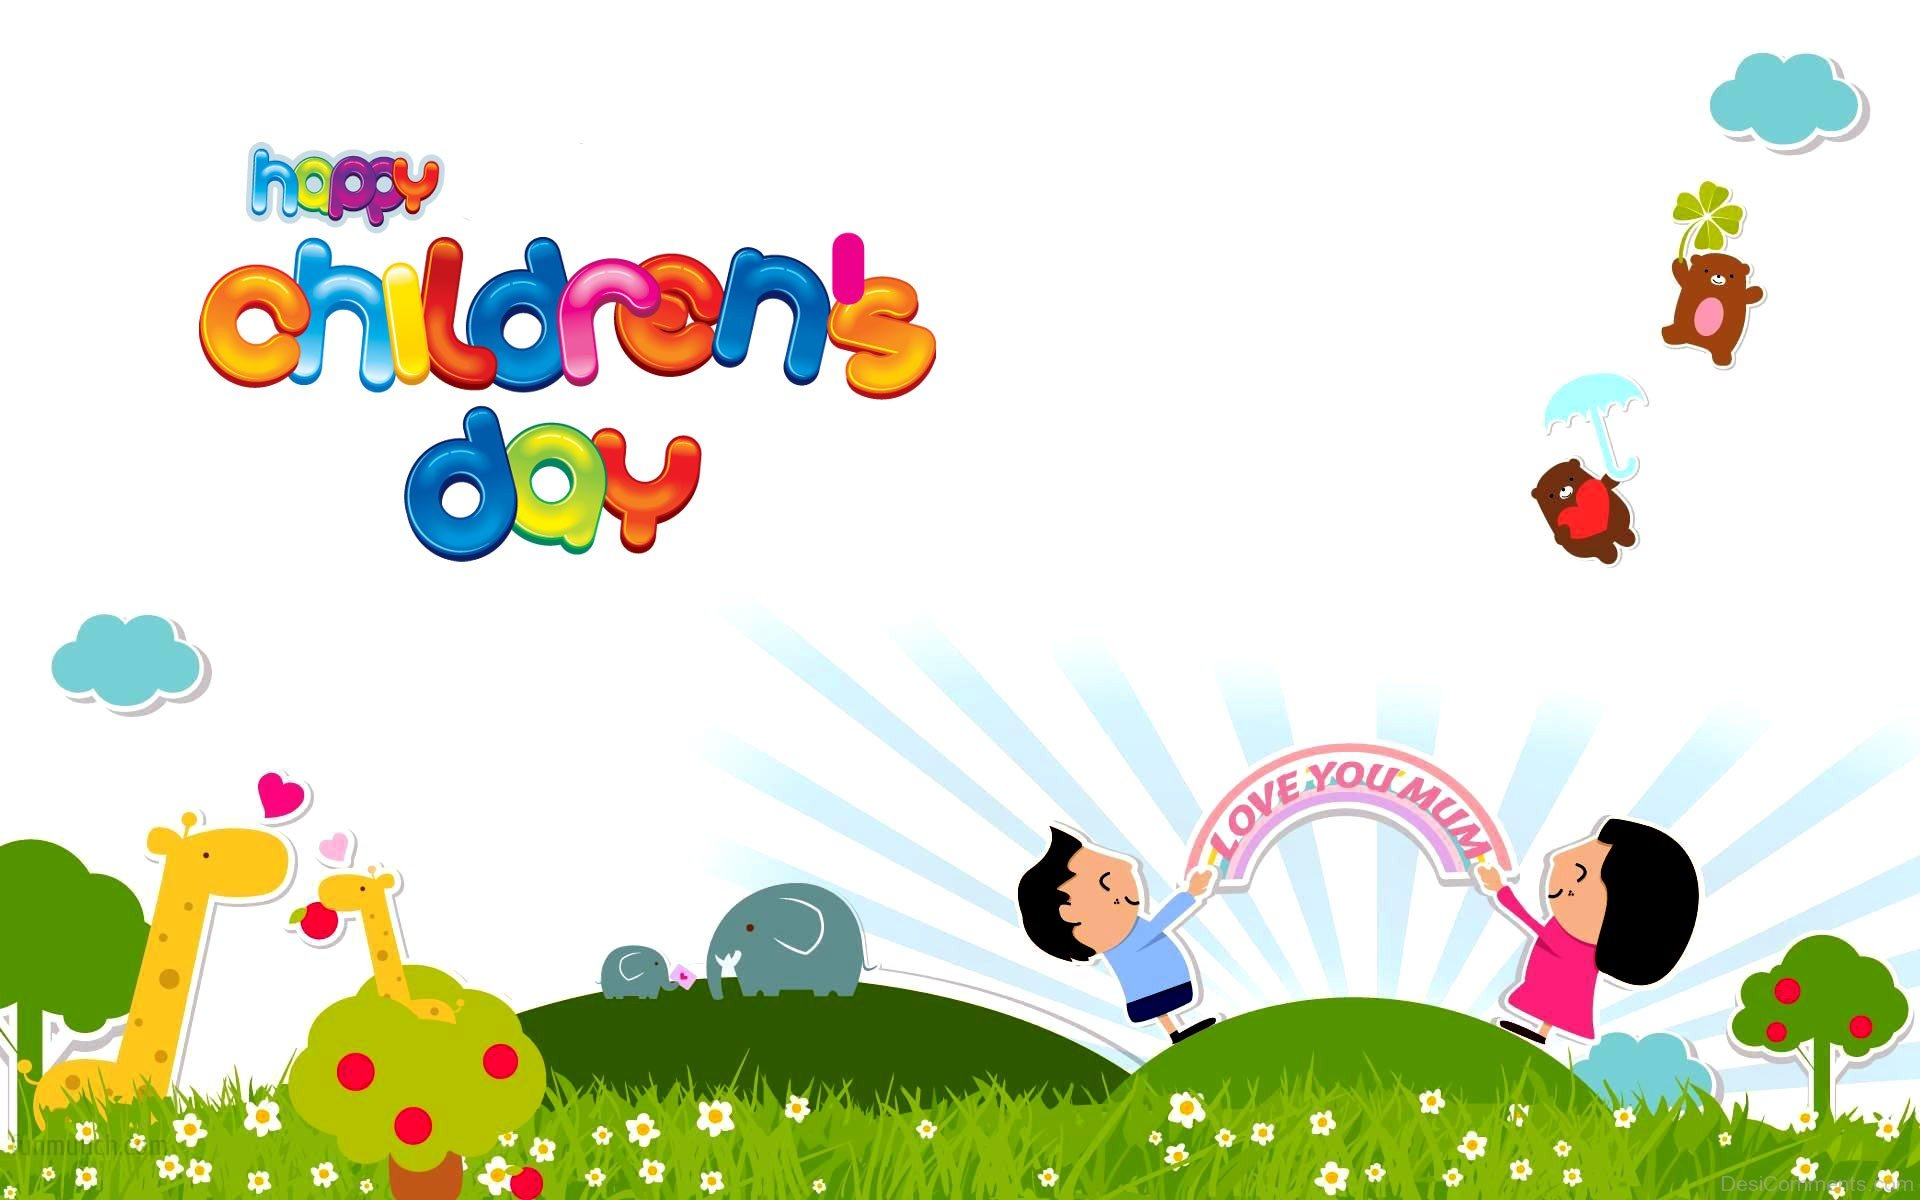 Children s day pictures images graphics page 2 - Children s day images download ...